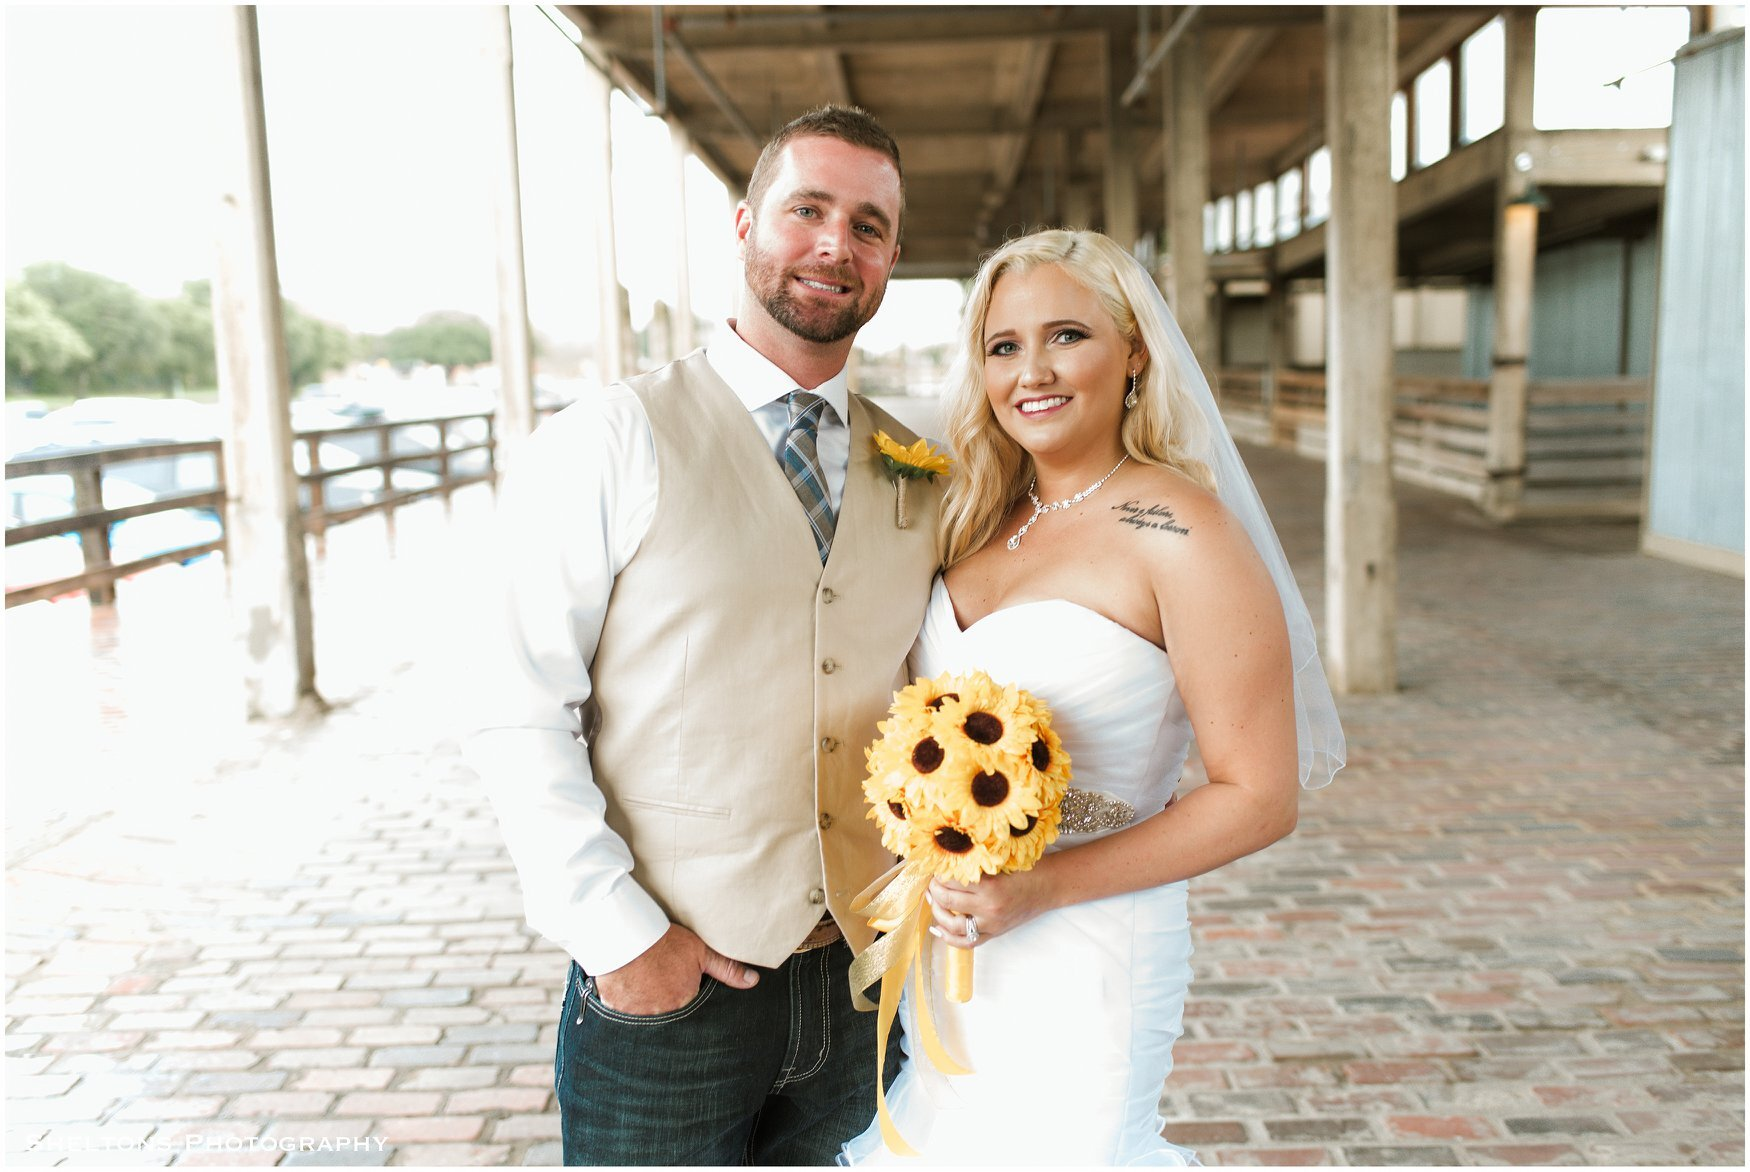 """Morgan Nelson - """"Wedding & Engagement photosSpencer did such a great job on our wedding and engagement photos ! He was fun to work with and make us feel comfortable. He was very fast to get our photos back and I would highly recommend him!"""""""